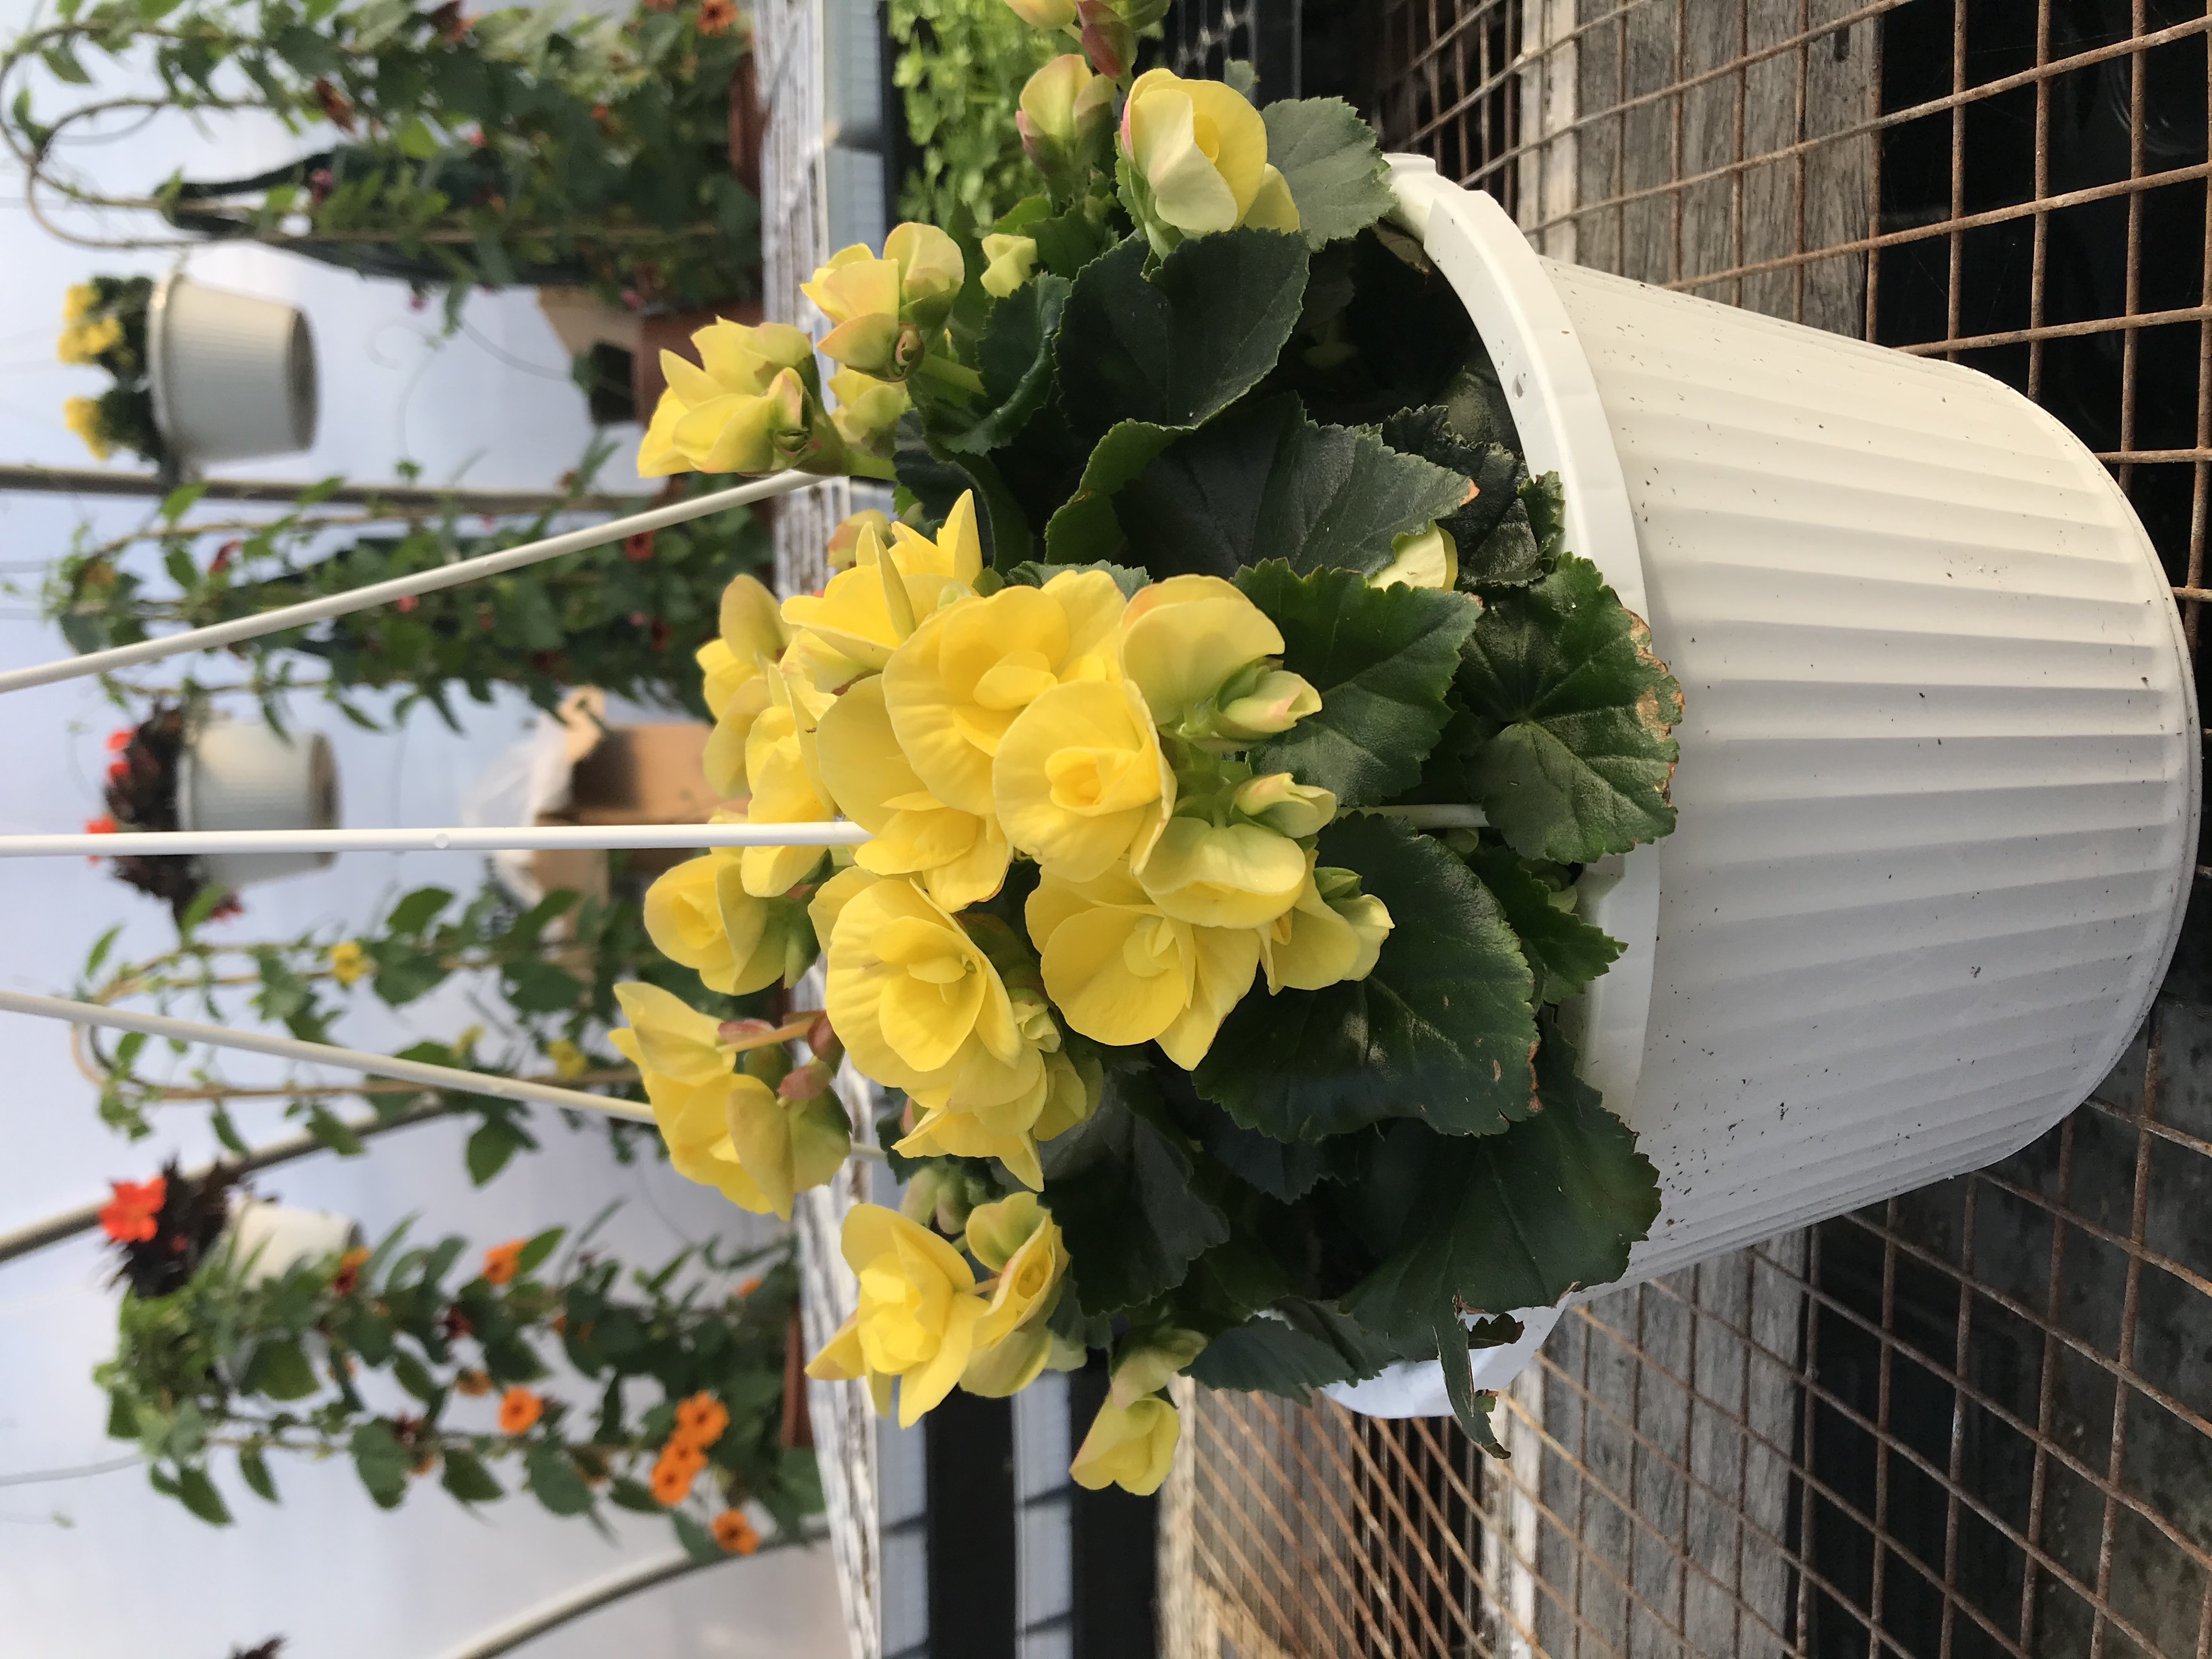 Begonia-yellow-double flower